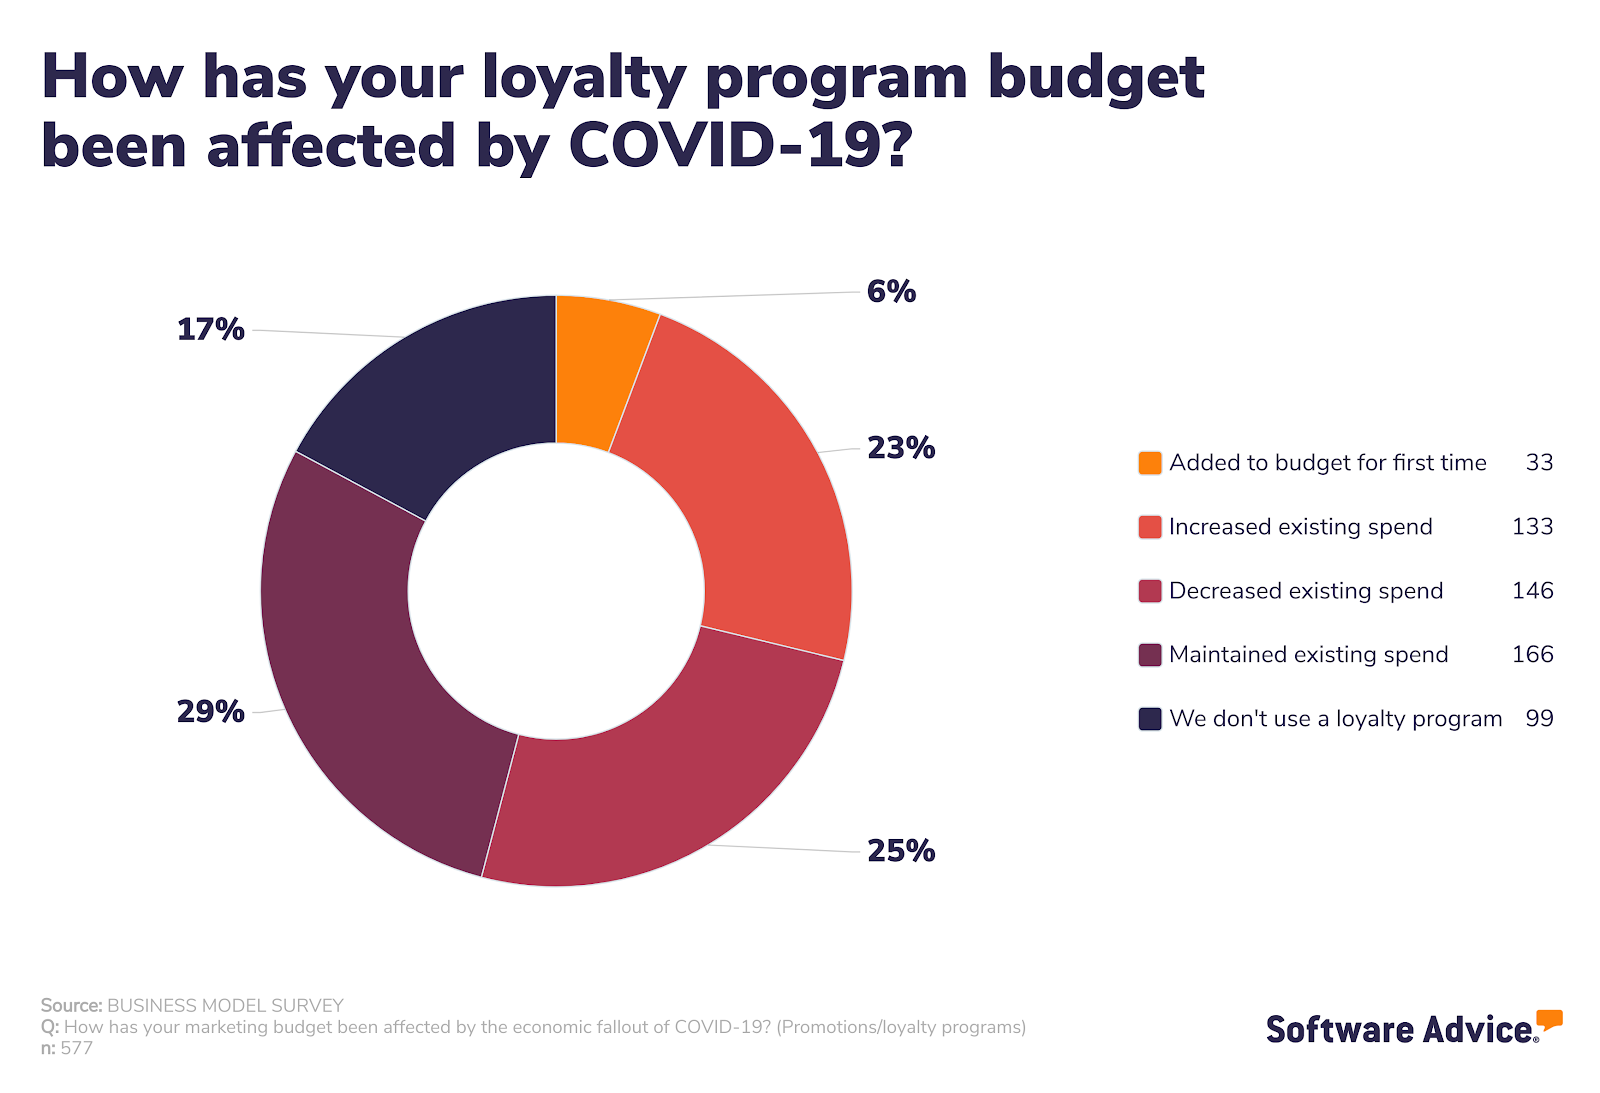 How has your loyalty program budget been affected by COVID-19?